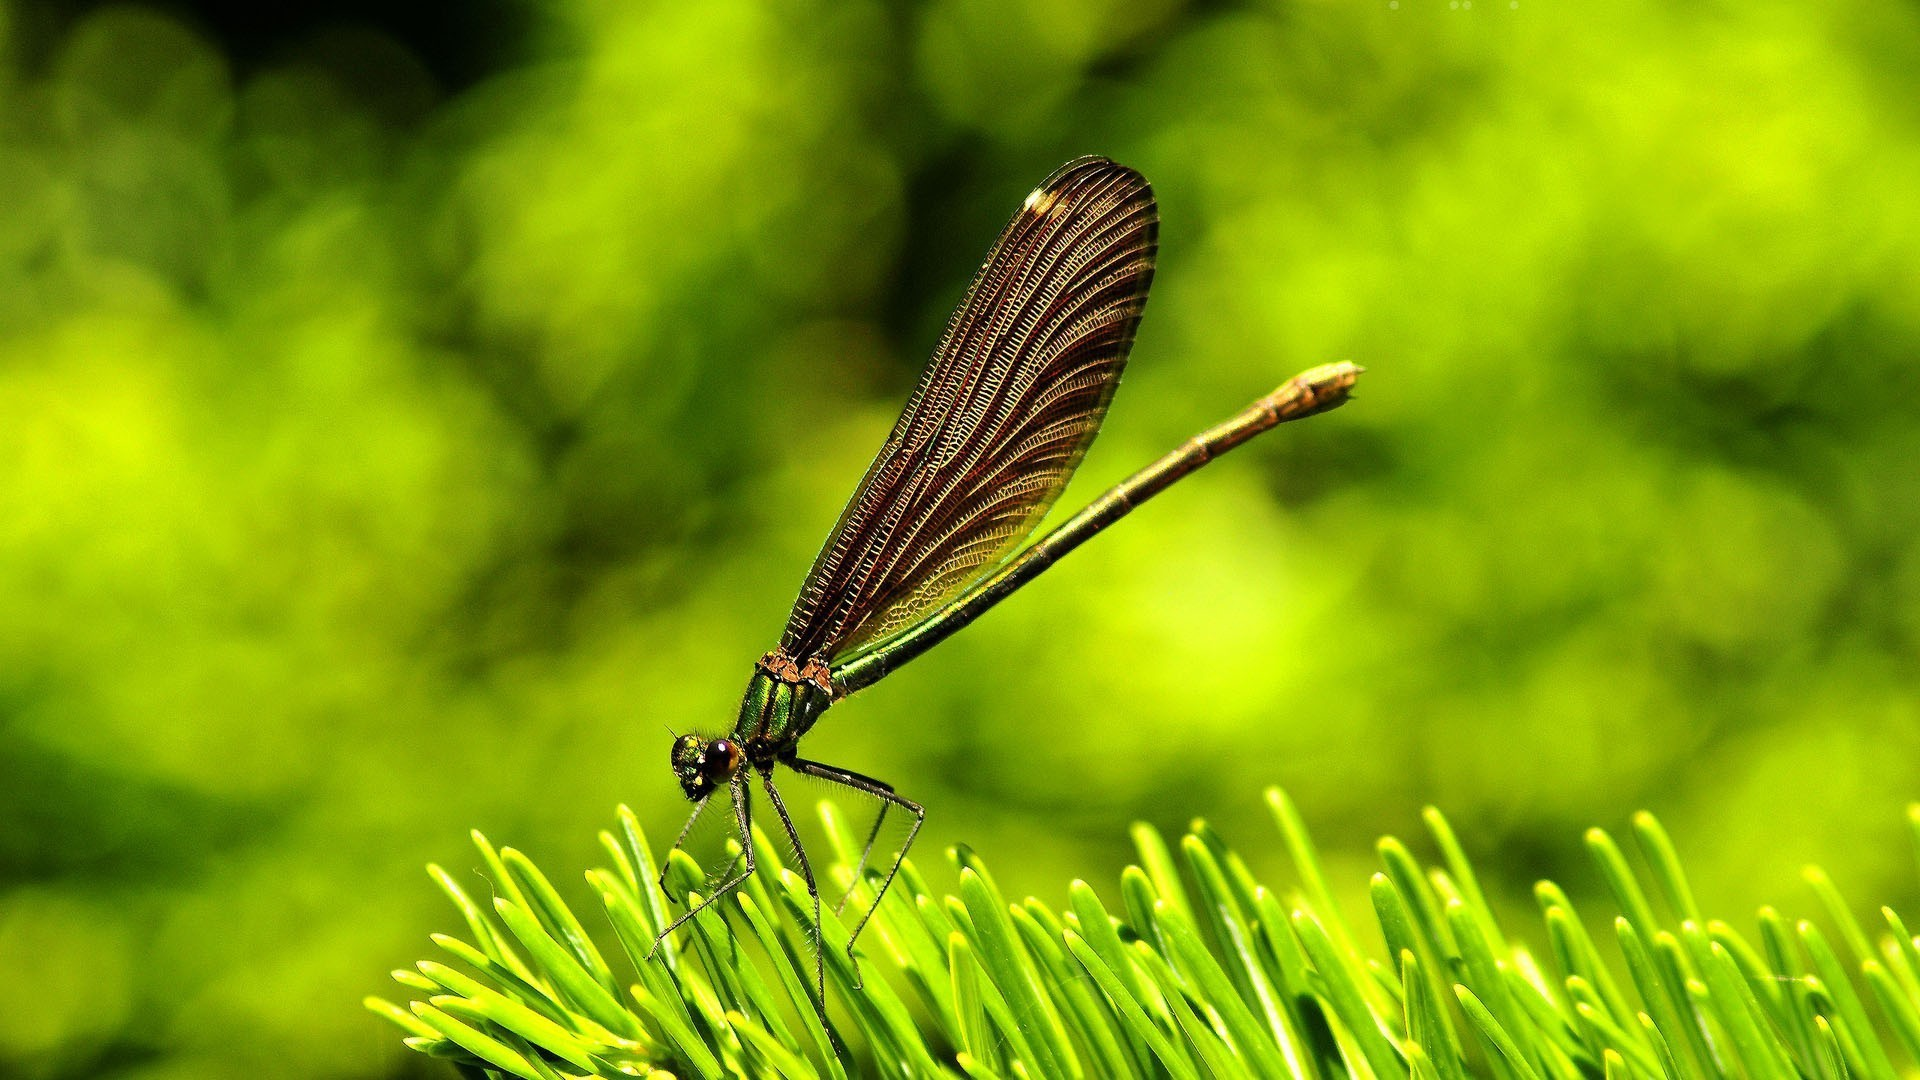 Dragonflies-green-insects-nature-1920x1080-green-insects-nature-via-www-all-in-wallpaper-wp3804891